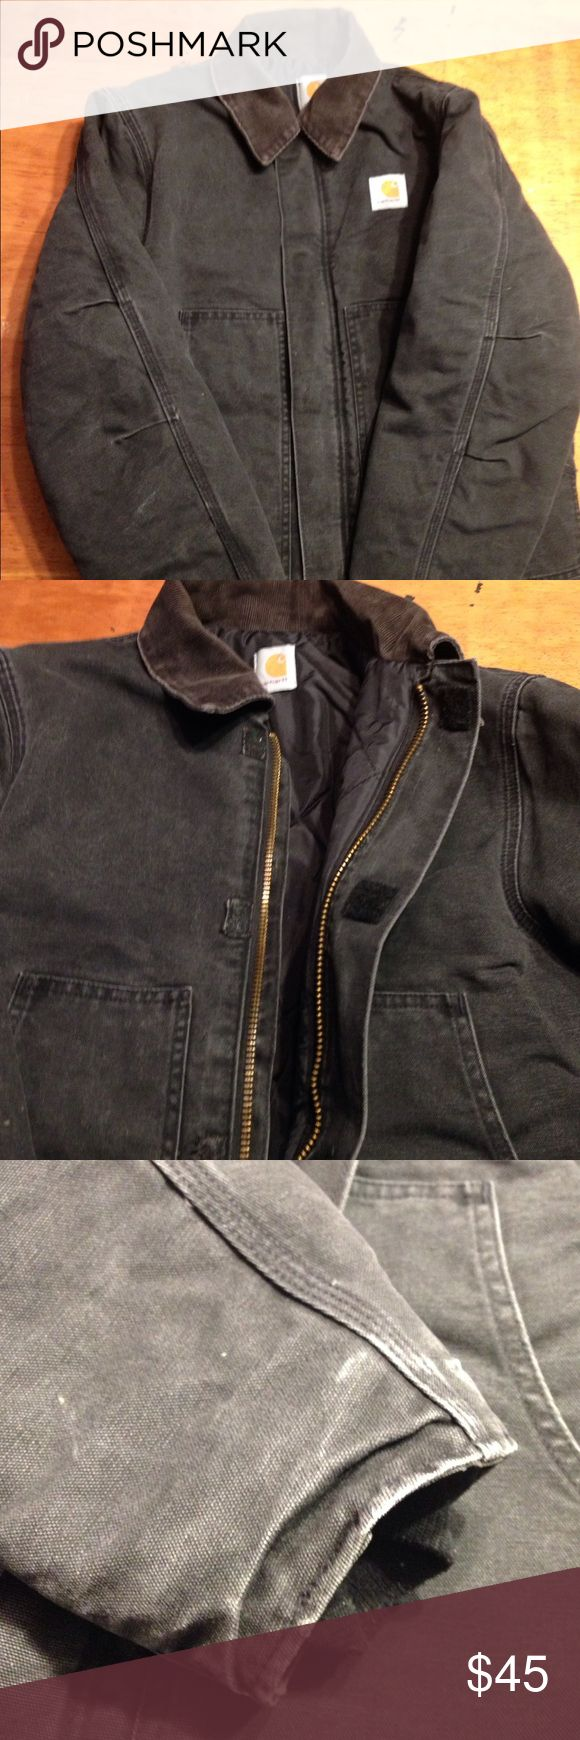 Carhartt canvas coat Well worn and faded... but in very good condition with lots of wear left. Hard working coat! No stains or rip.quilted lining. No size inside. Men's small or women's medium FINAL SALE Carhartt Jackets & Coats